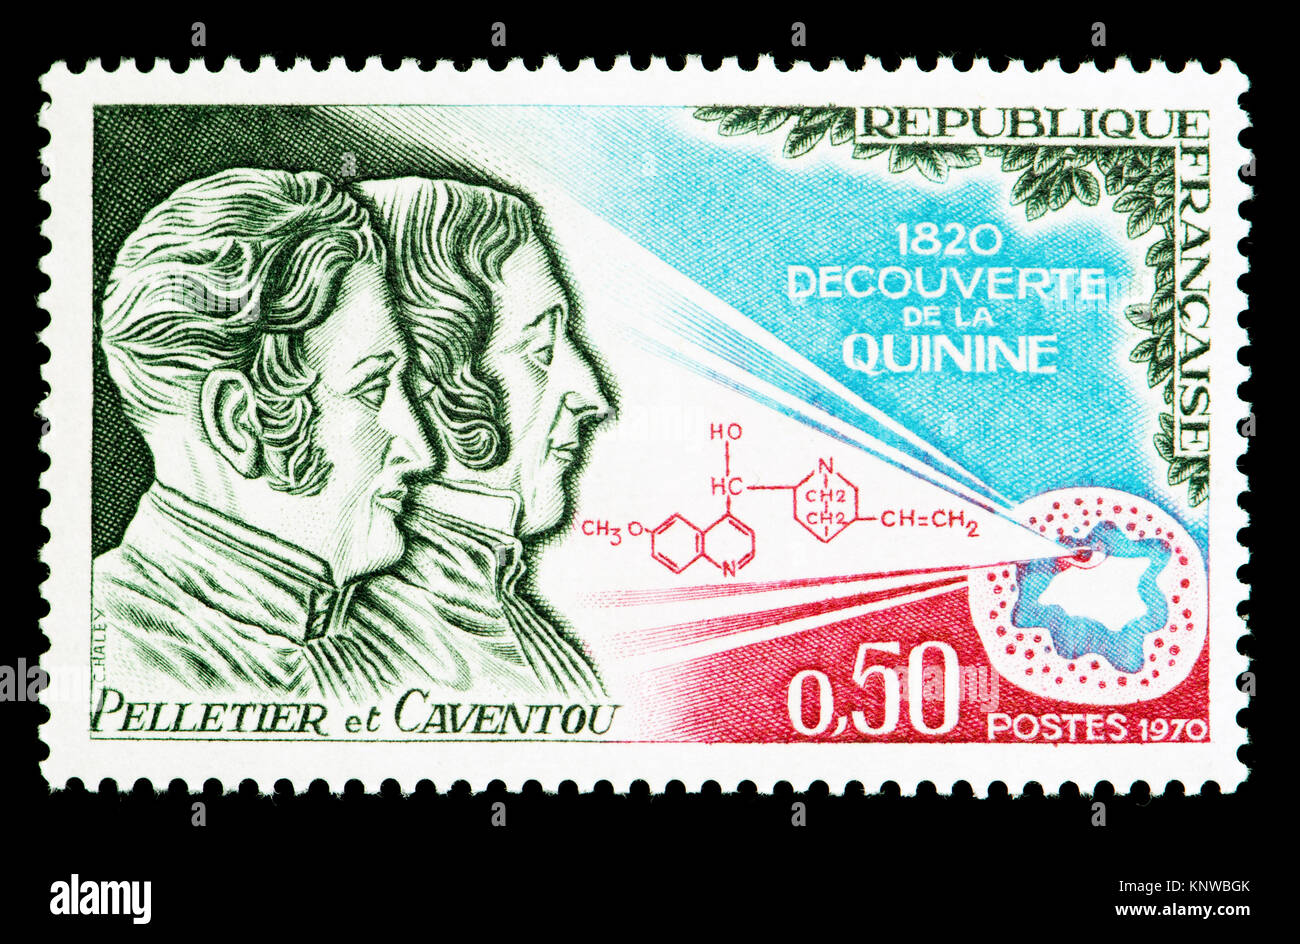 French postage stamp (1970) : 150th anniversary of the discovery / isolation of quinine. Pierre-Joseph Pelletier - Stock Image